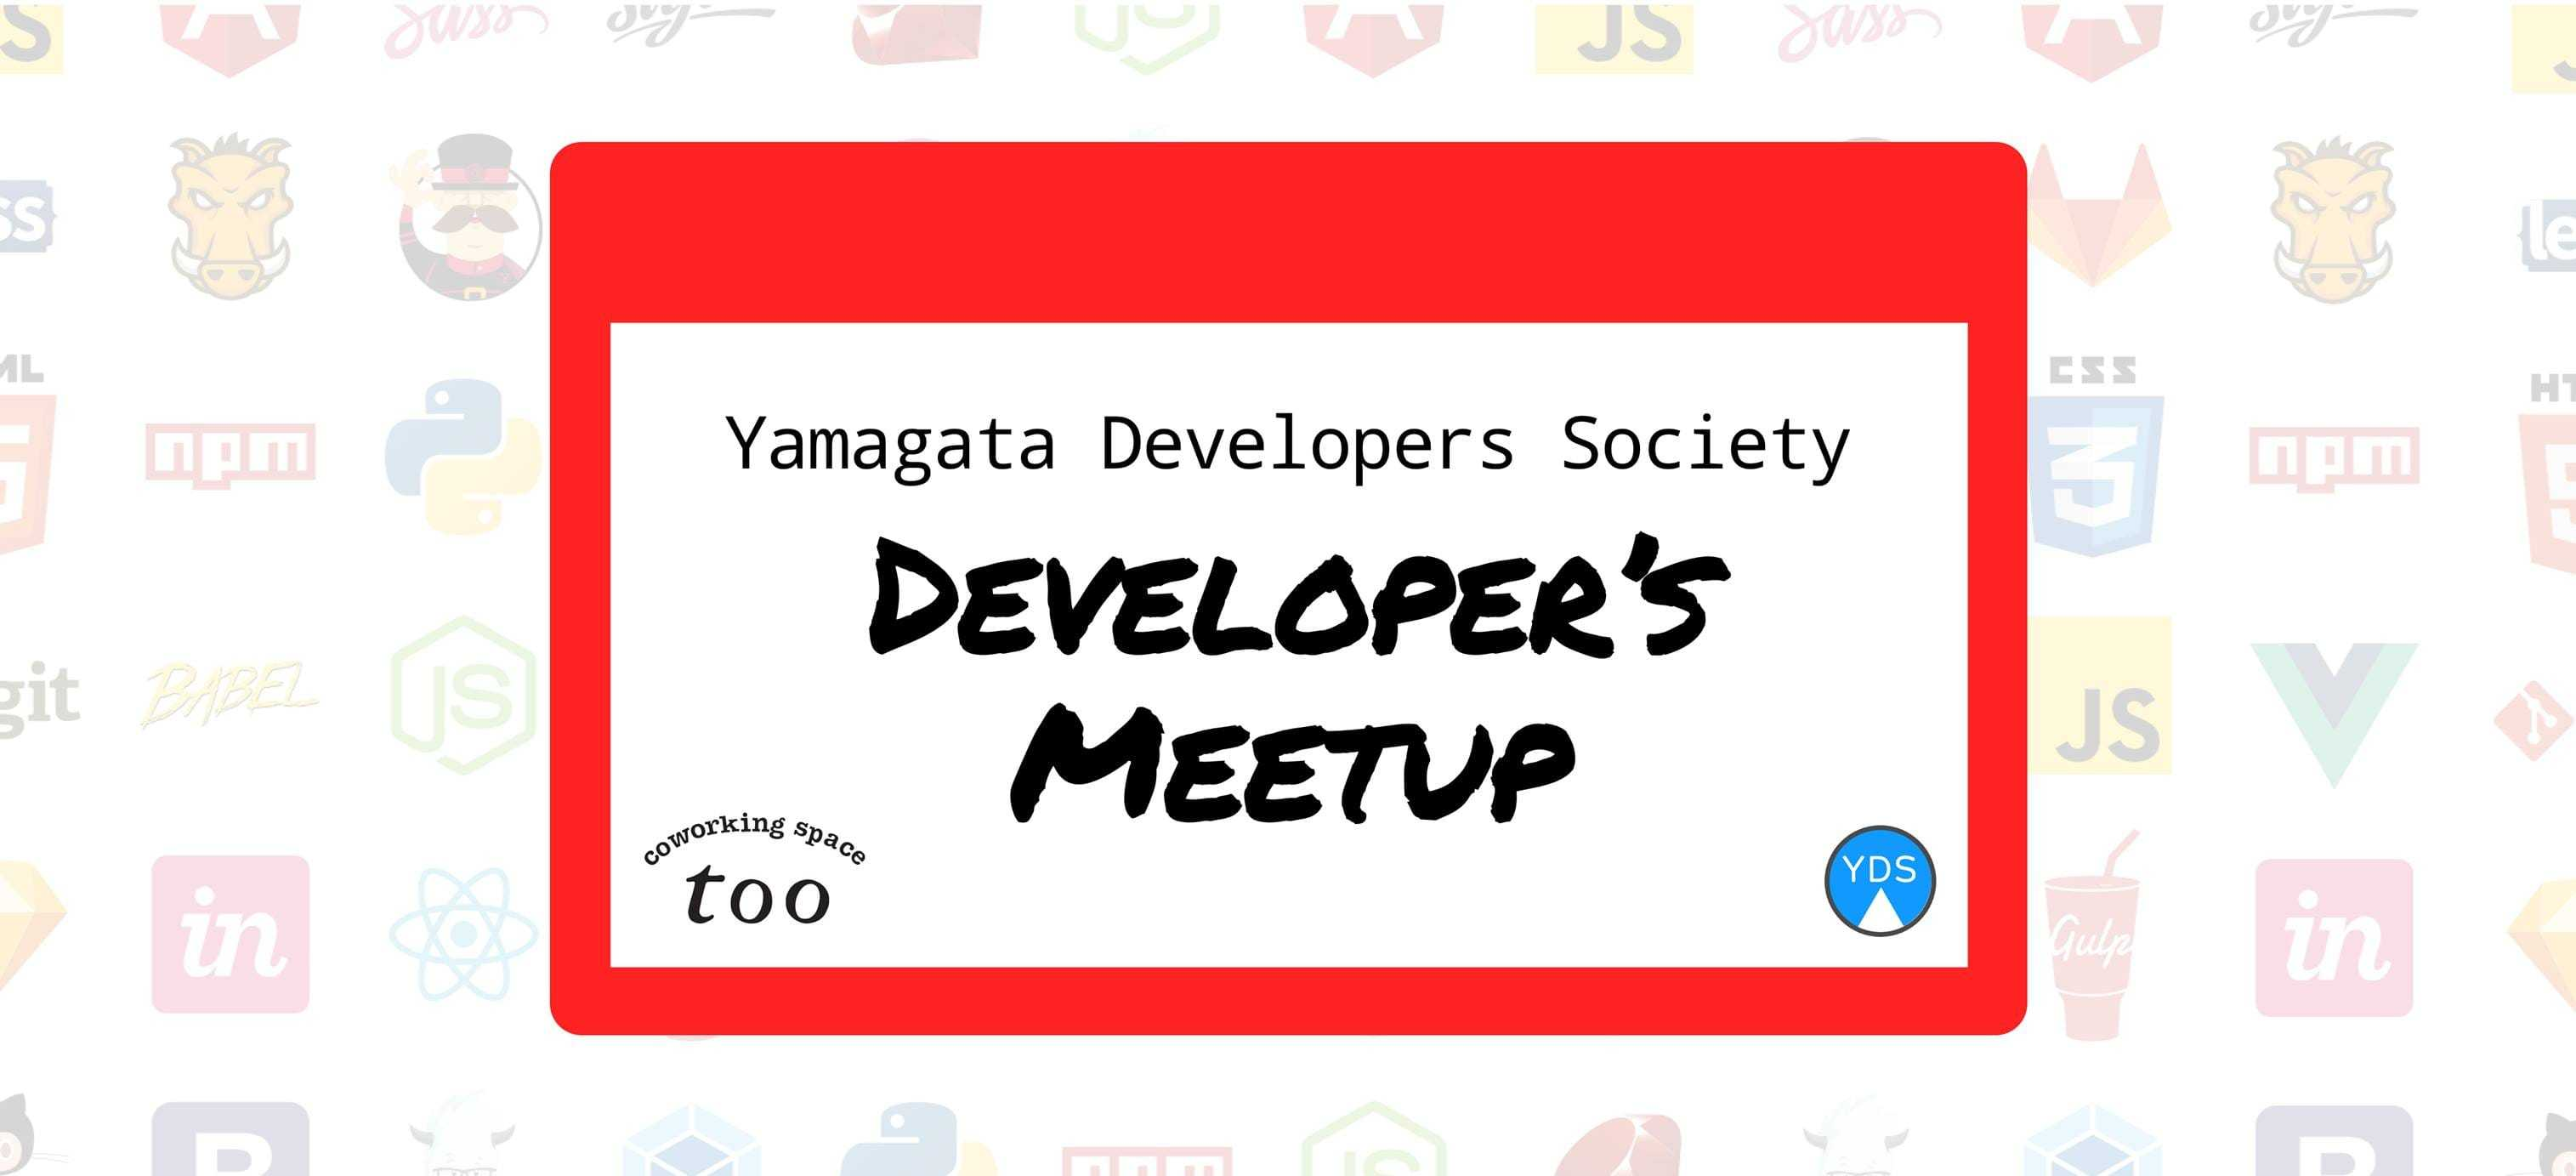 【開催報告】Yamagata Developer's Meetup Night! 2019年11月 cover image